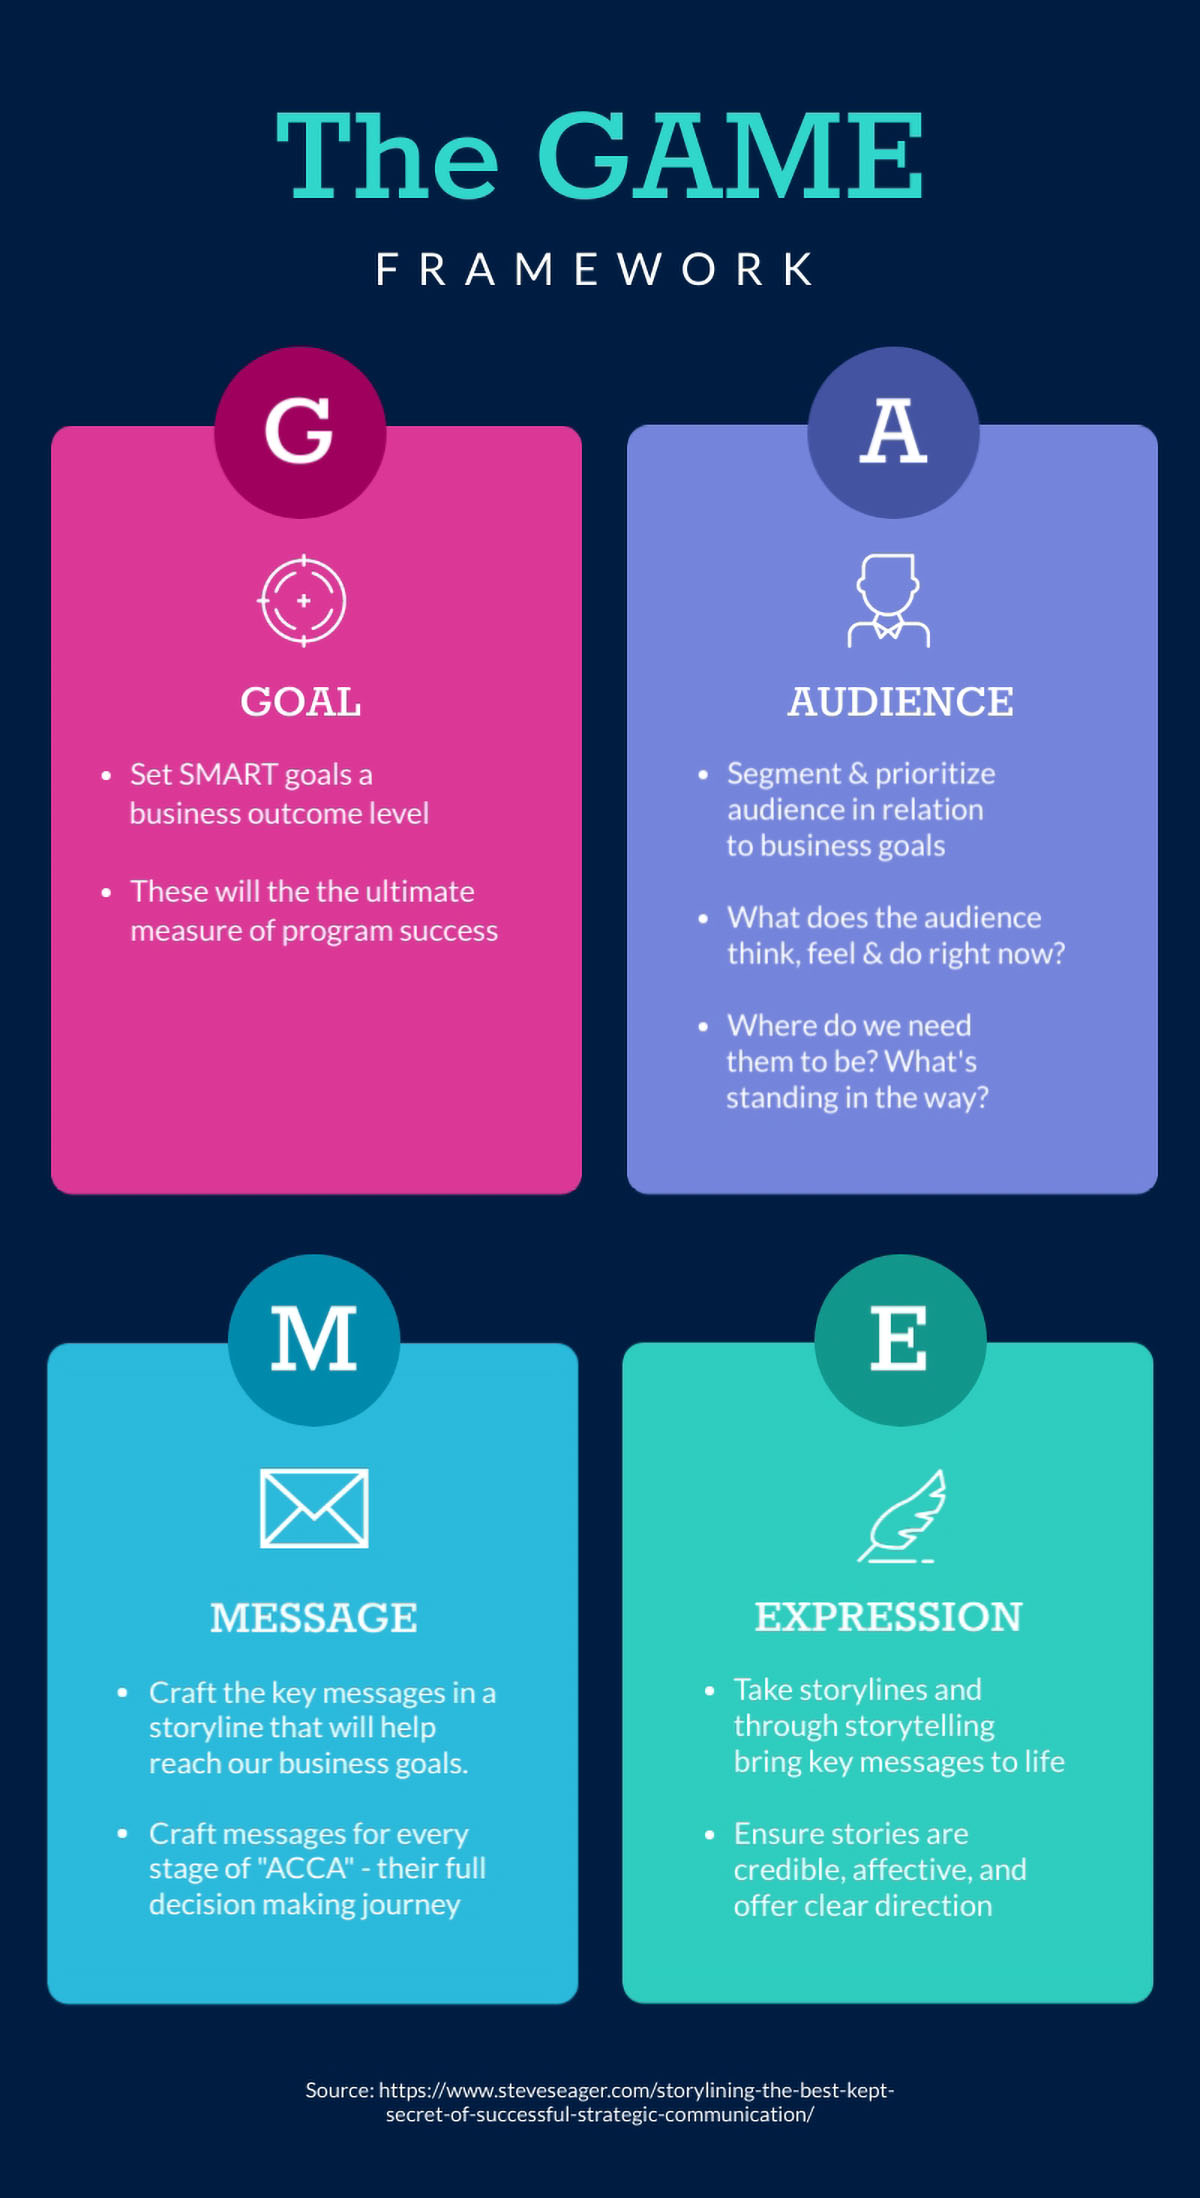 marketing presentation - game framework infographic